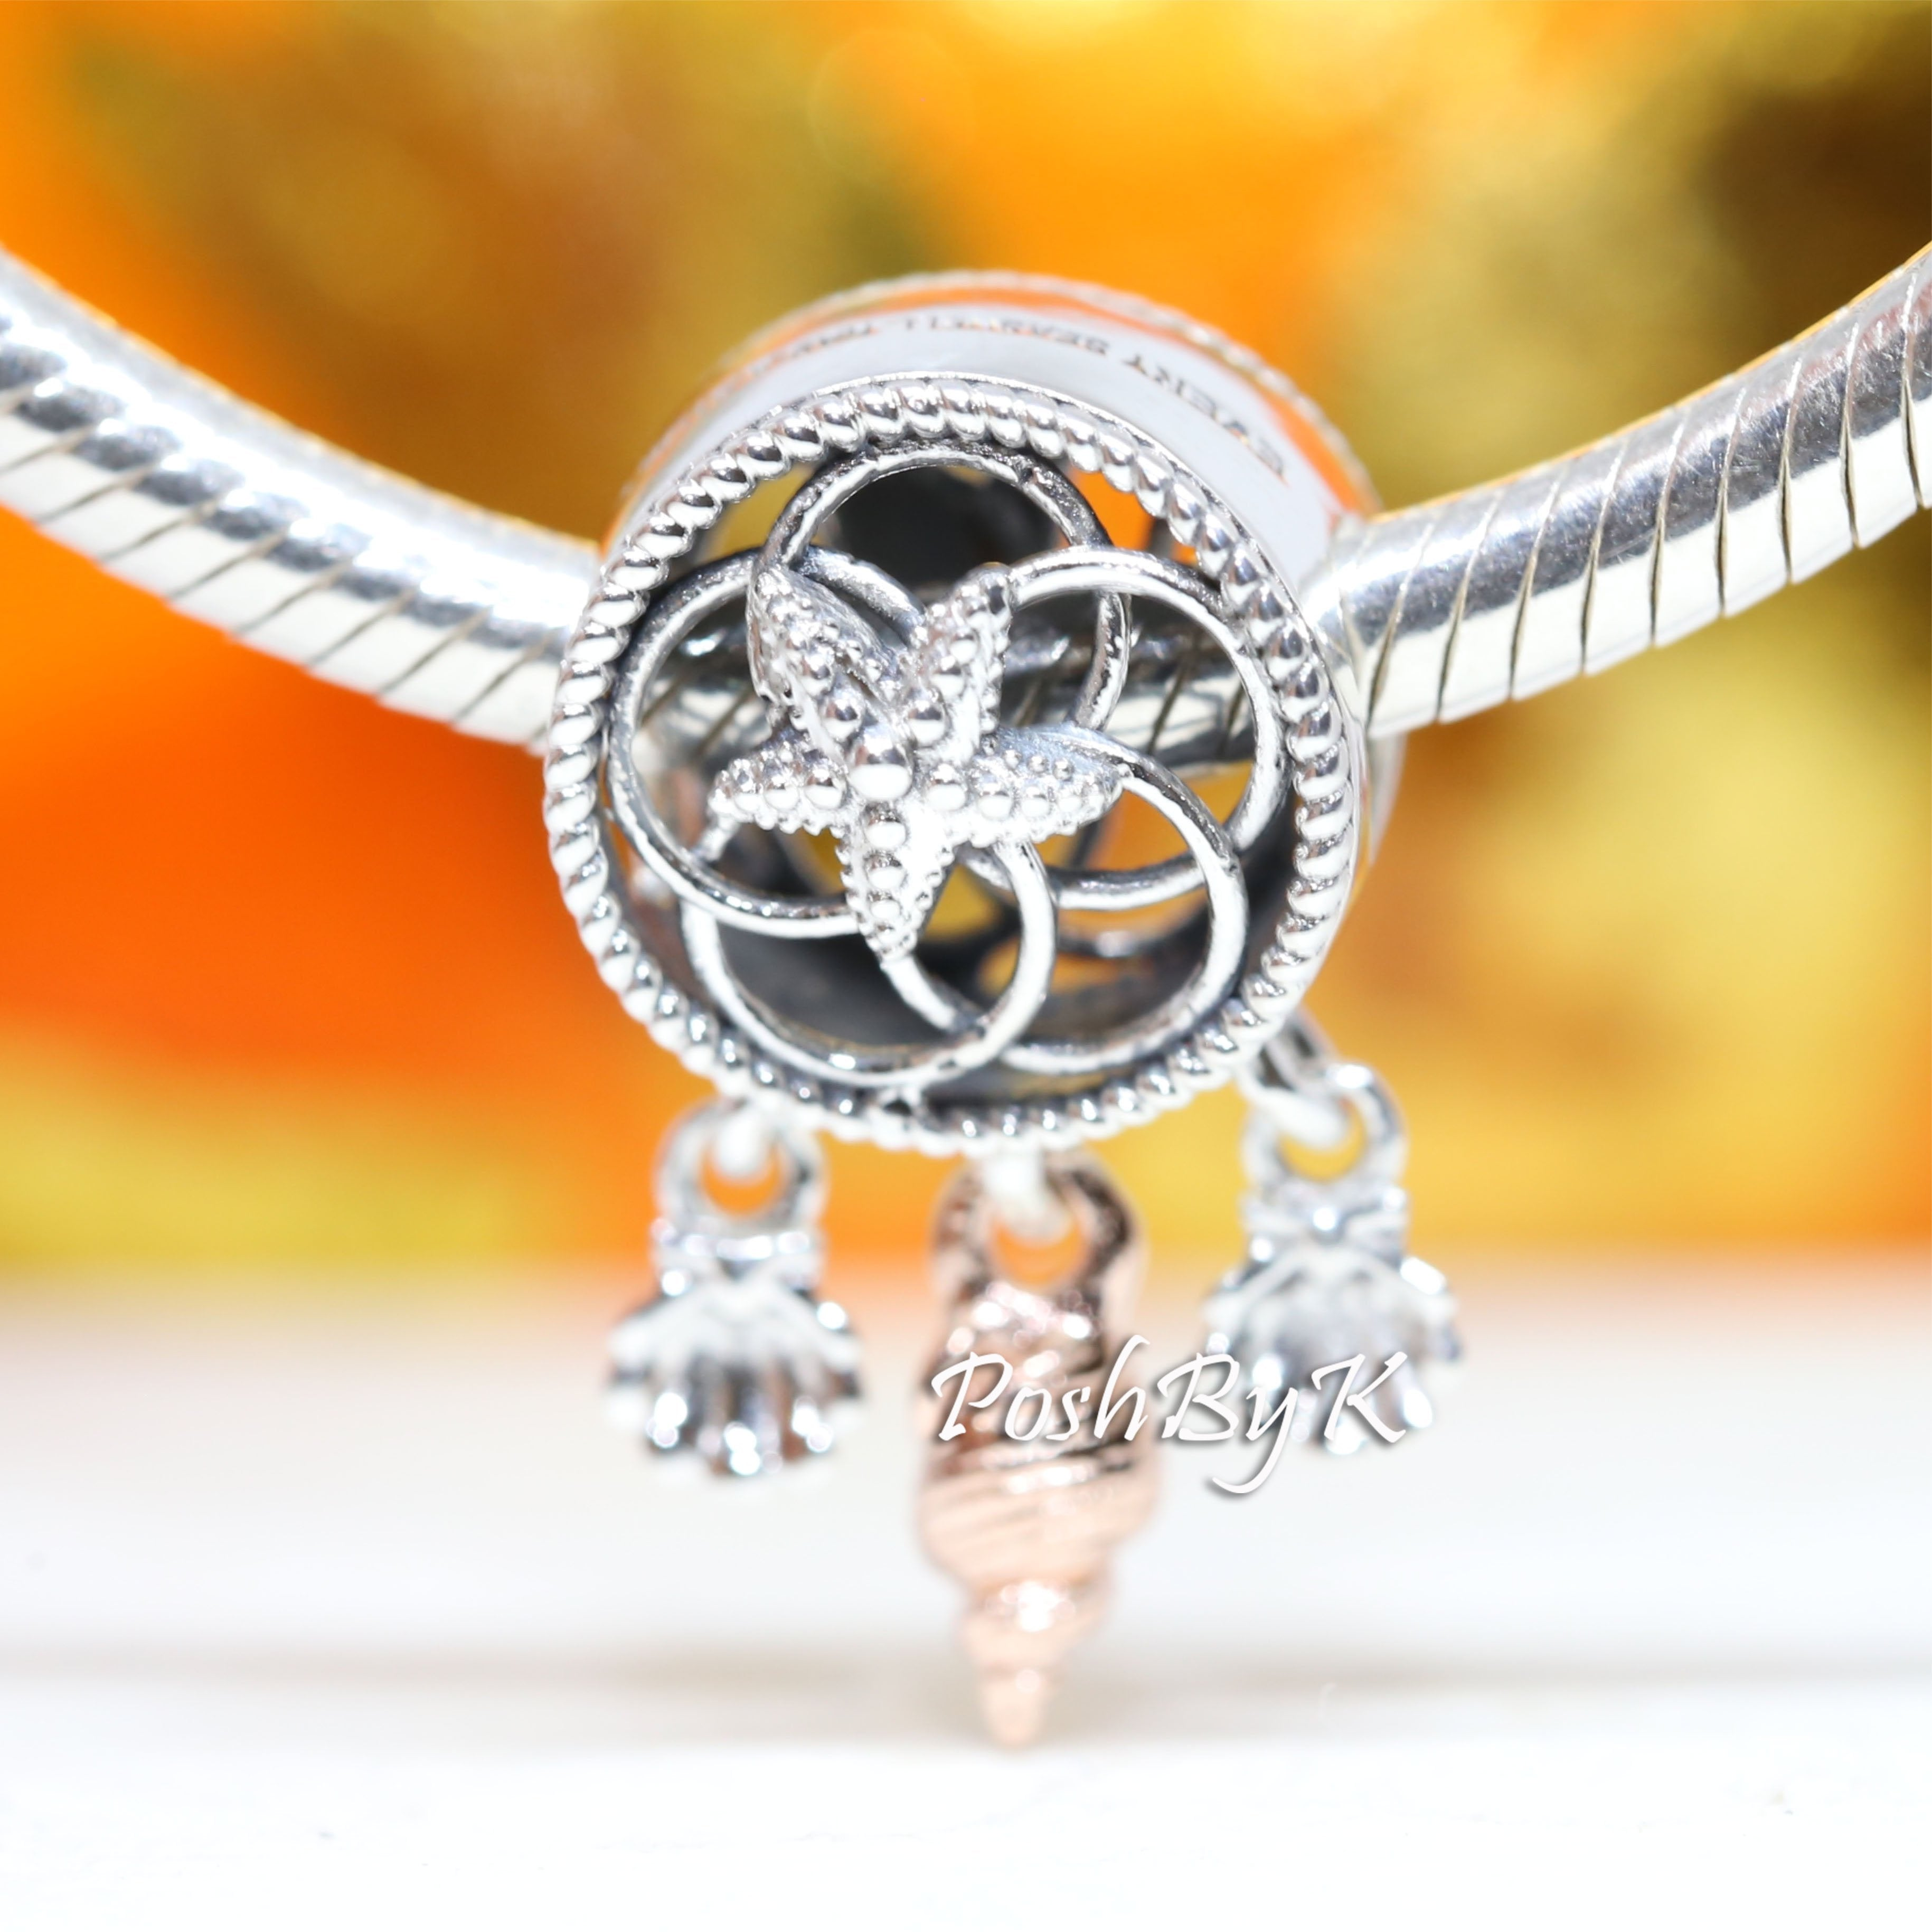 788944C00, pandora jewelry, beads for pandora, beads for pandora bracelets, charms for pandora, beaded jewelry, pandora jewelry, pandora beads, pandora charms